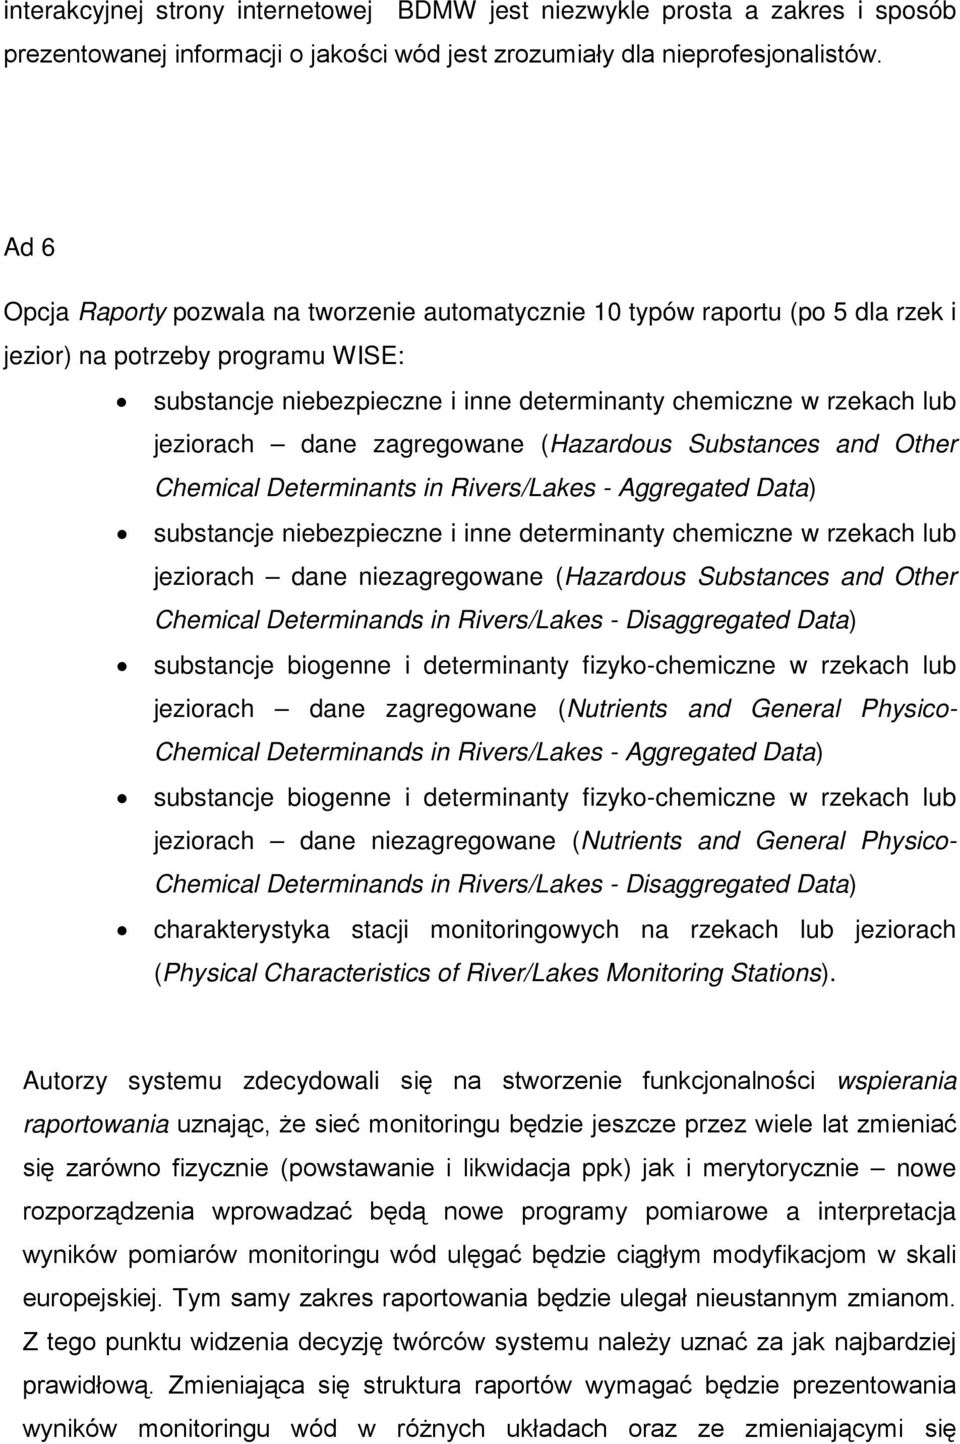 jeziorach dane zagregowane (Hazardous Substances and Other Chemical Determinants in Rivers/Lakes - Aggregated Data) substancje niebezpieczne i inne determinanty chemiczne w rzekach lub jeziorach dane